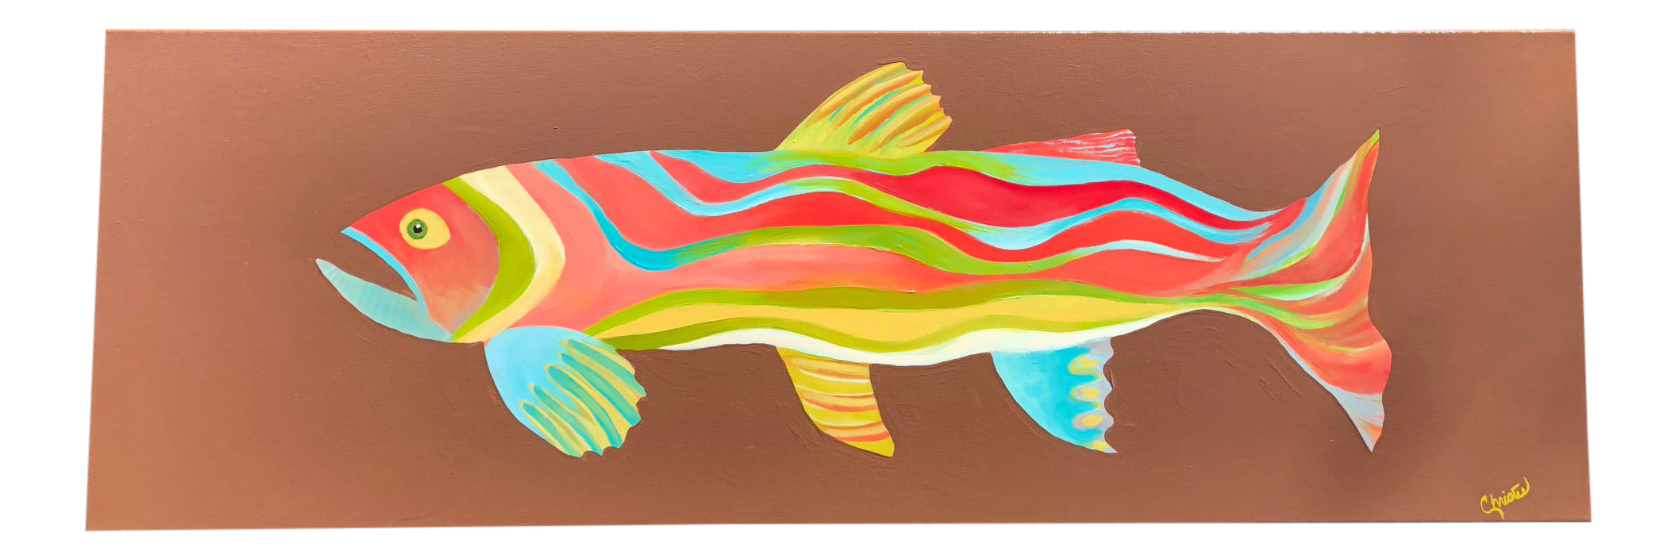 Acrylic drawing fish. Contemporary painting chairish